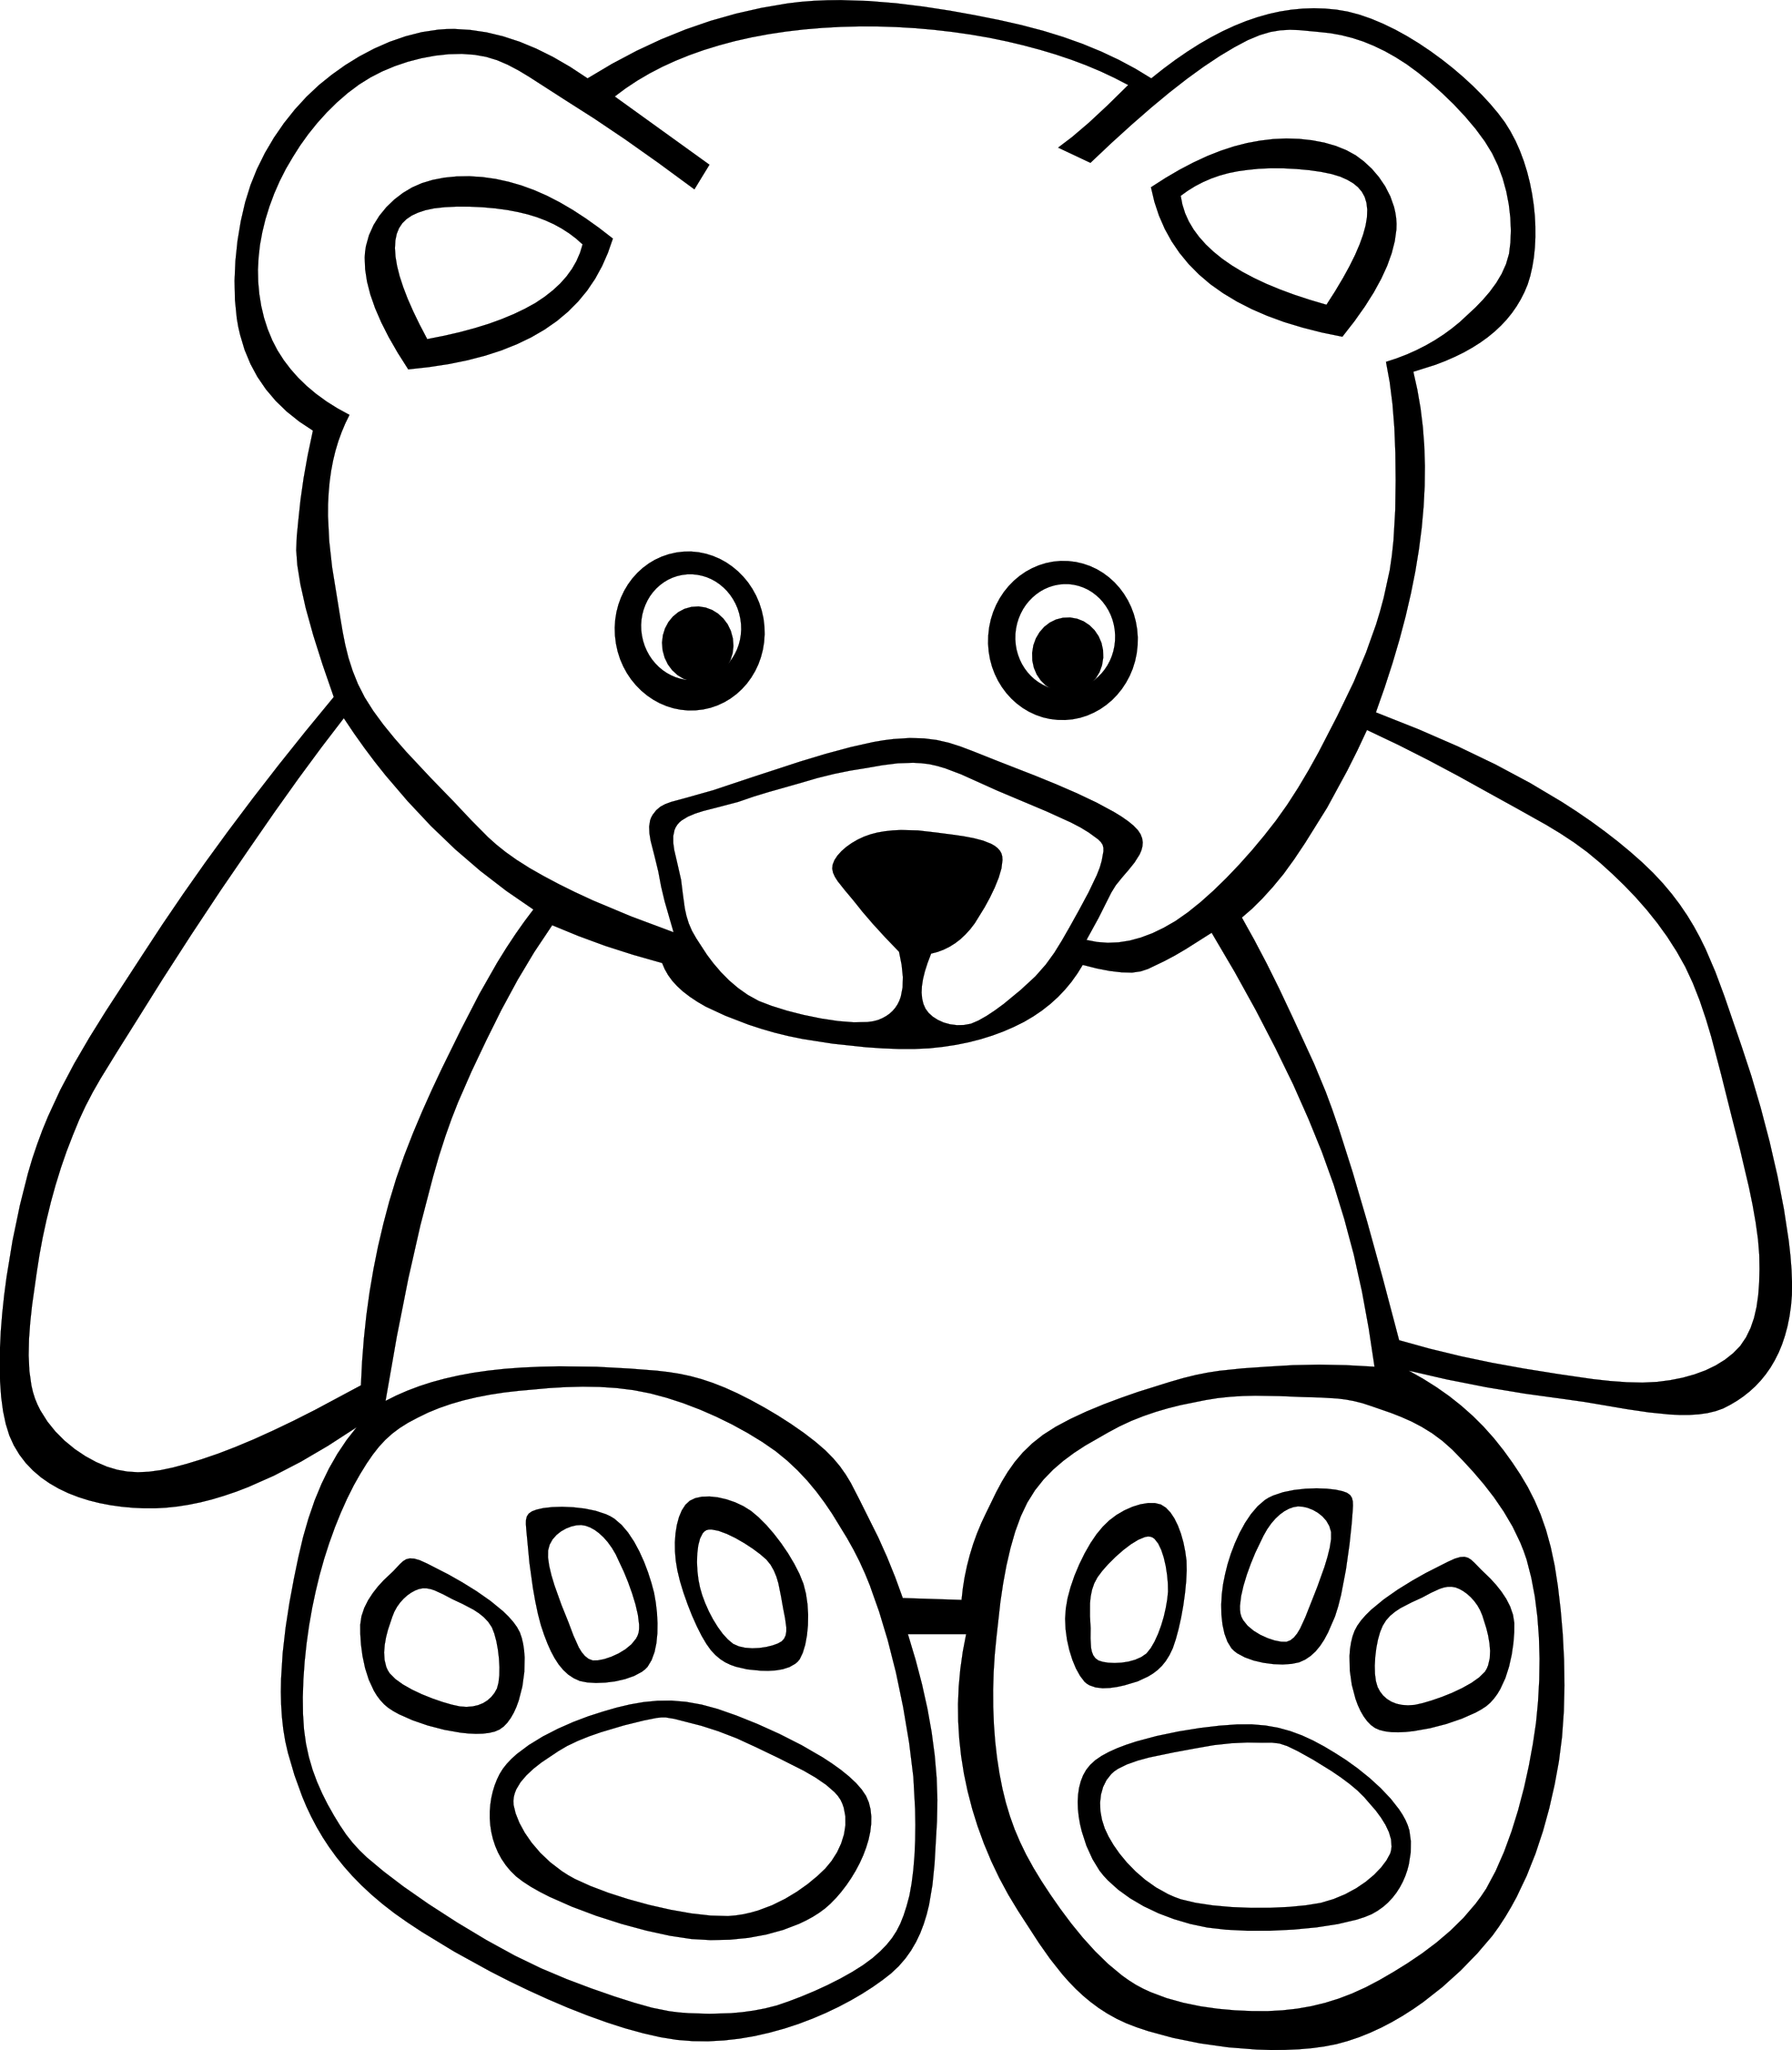 clip transparent library Bear clipart black and white. Teddy panda free images